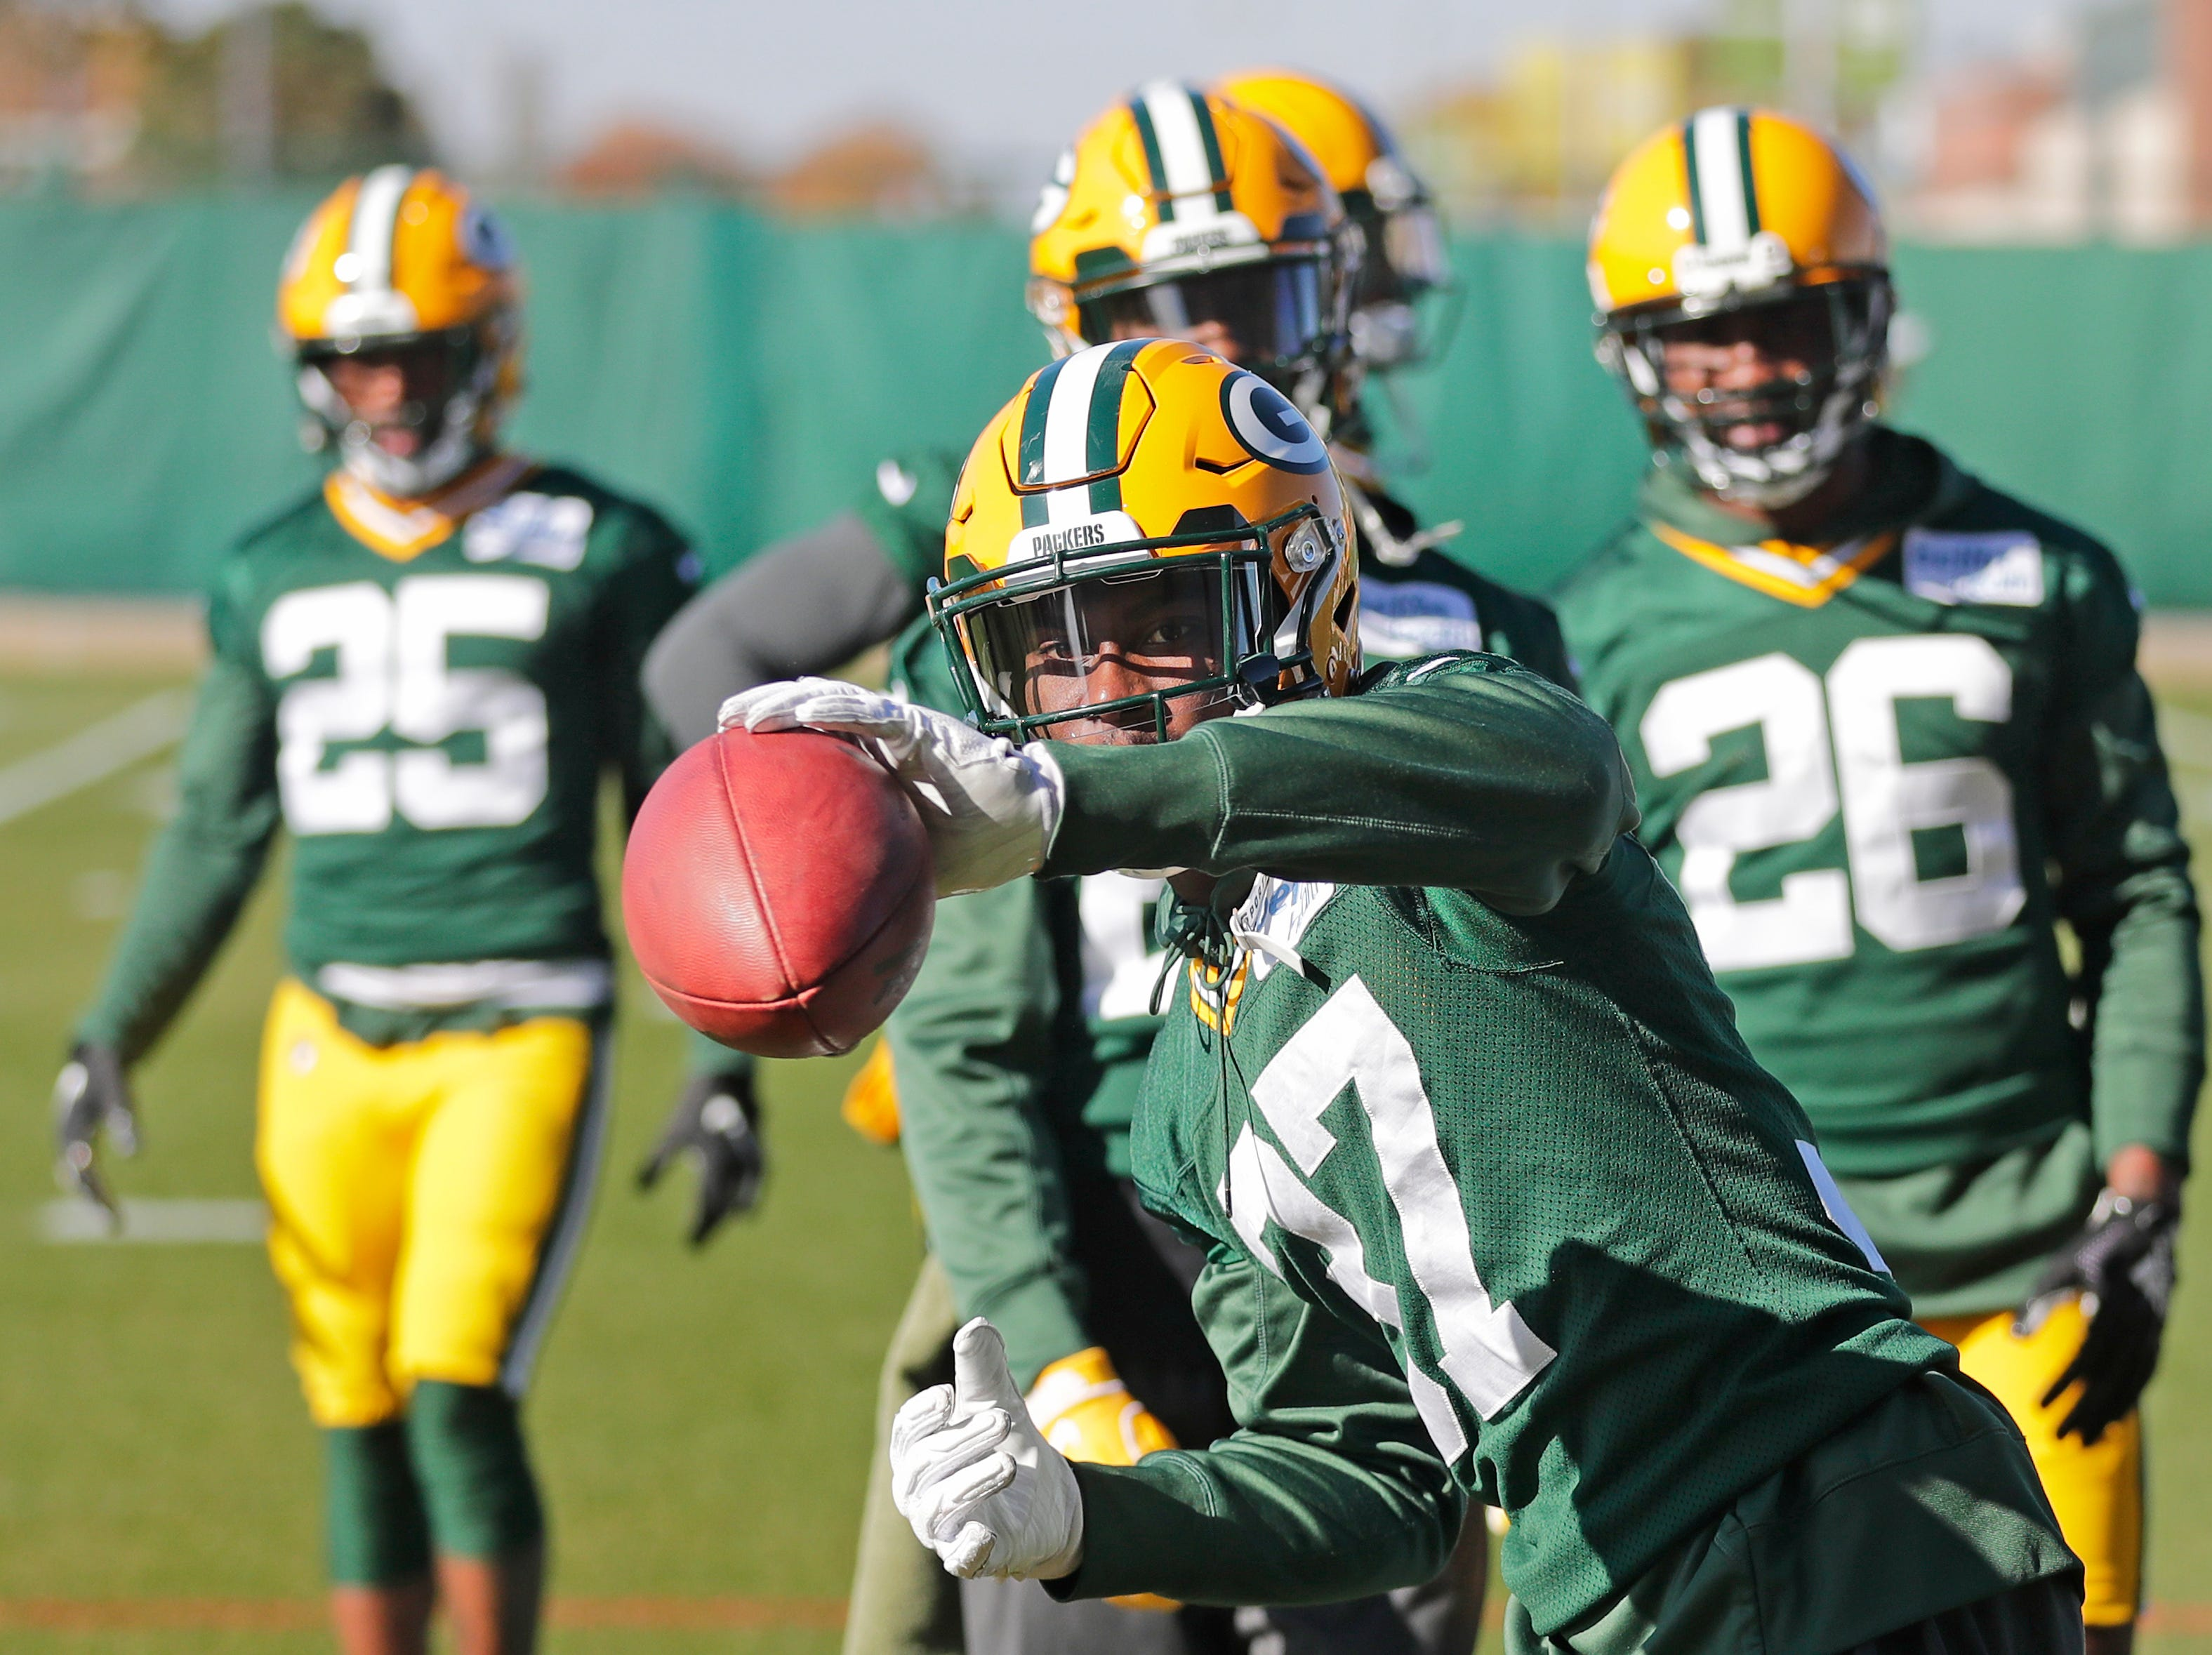 Green Bay Packers cornerback Josh Jackson (37) works on one-handed catches during practice at Ray Nitschke Field on Wednesday, October 31, 2018 in Ashwaubenon, Wis.